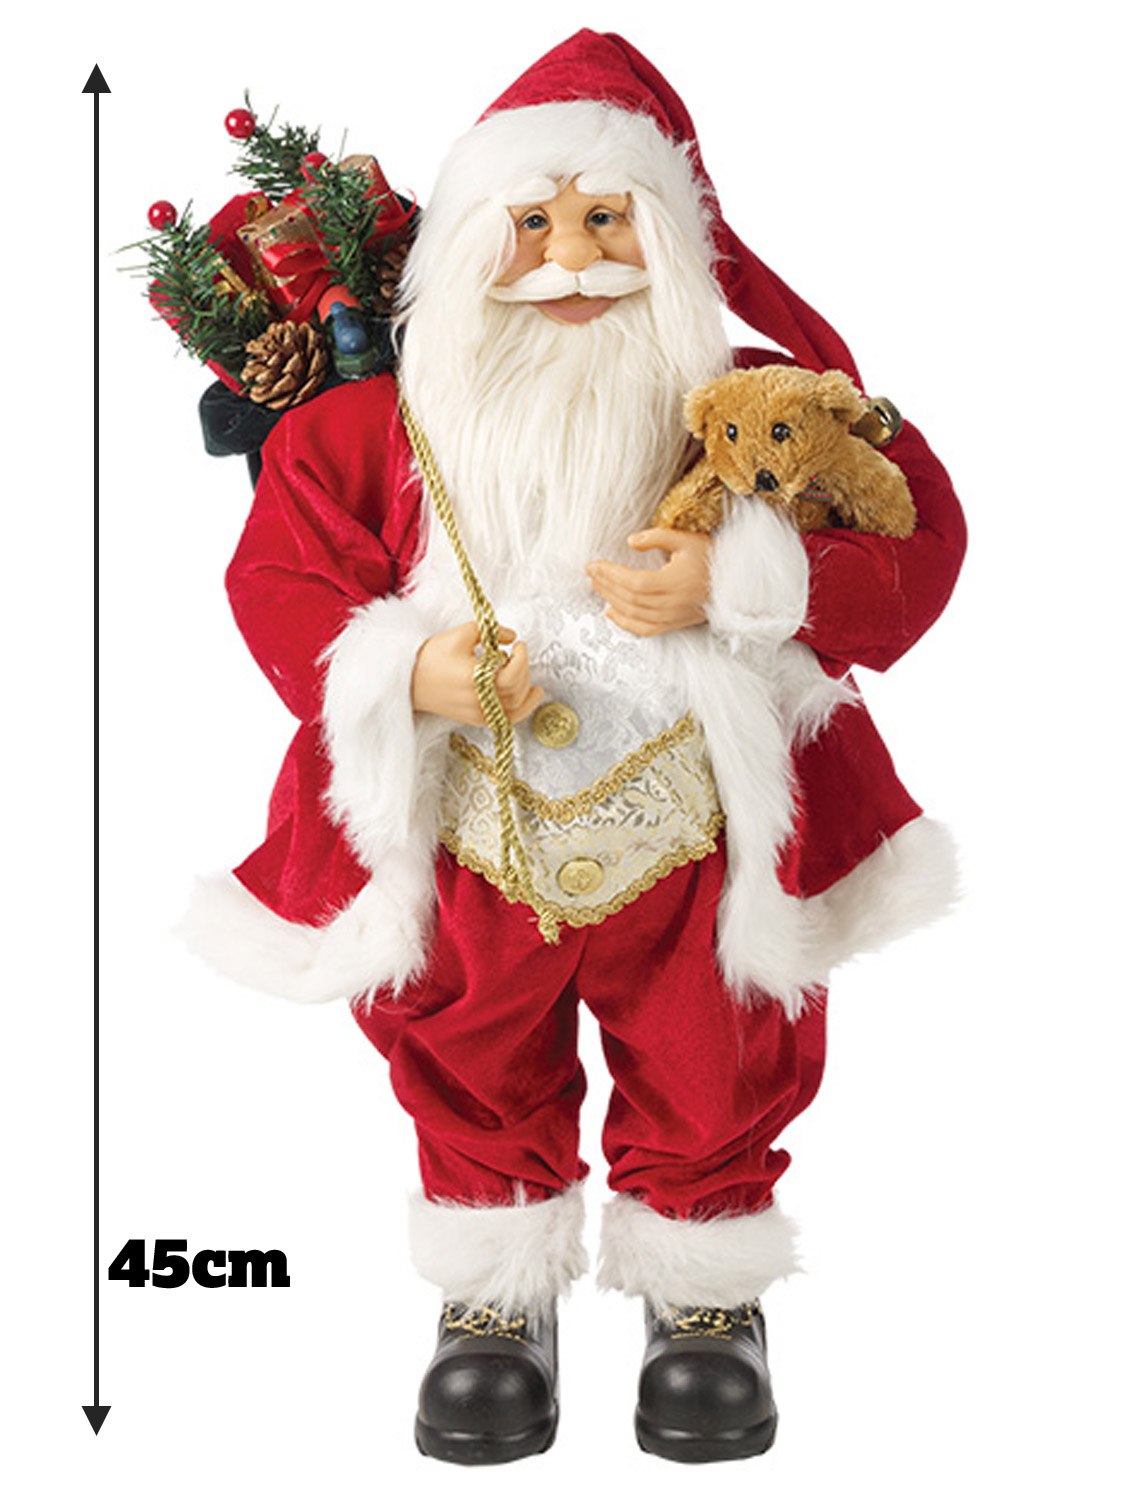 Father-Christmas-Xmas-Standing-Santa-Claus-Decoration-Ornament-Gift-Figure